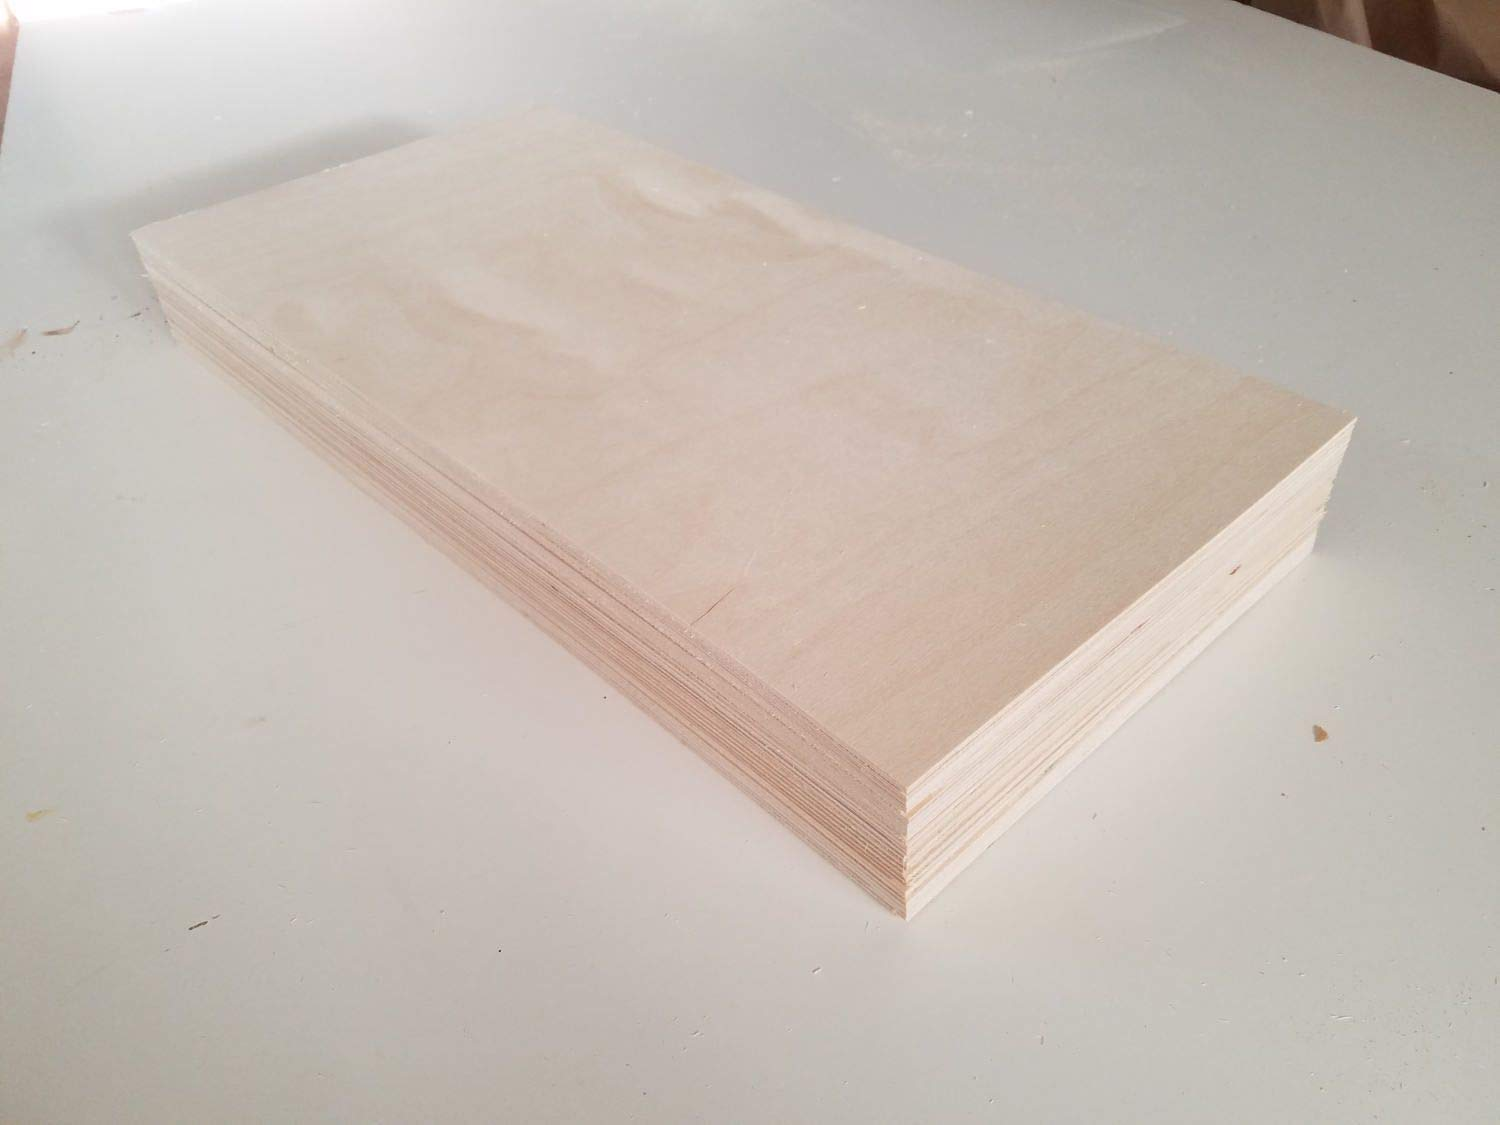 6MM 1/4'' x 12'' x 24'' Premium Baltic Birch Plywood Box of 12 B/BB Grade Birch Veneer Sheets one Clear face by The Kitchen Zone